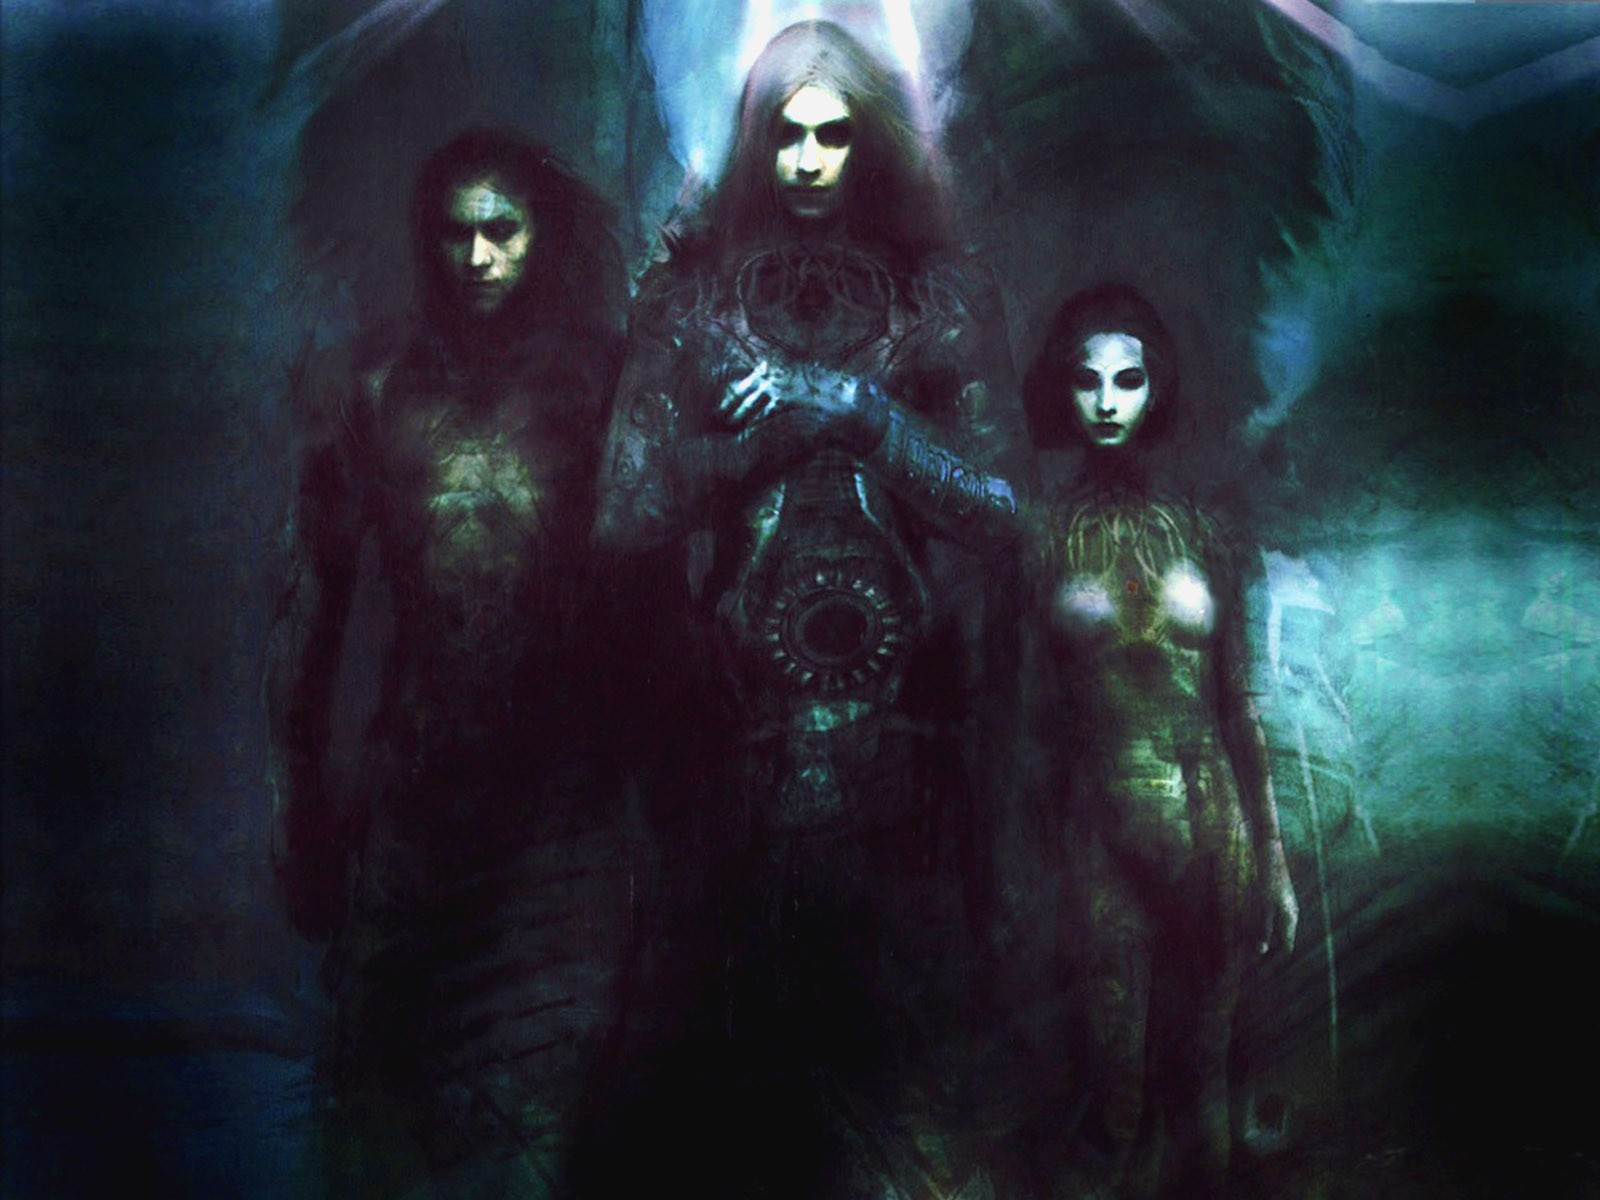 Dark Angel Ghosts gothic fantasy art dark horror occult 1600x1200